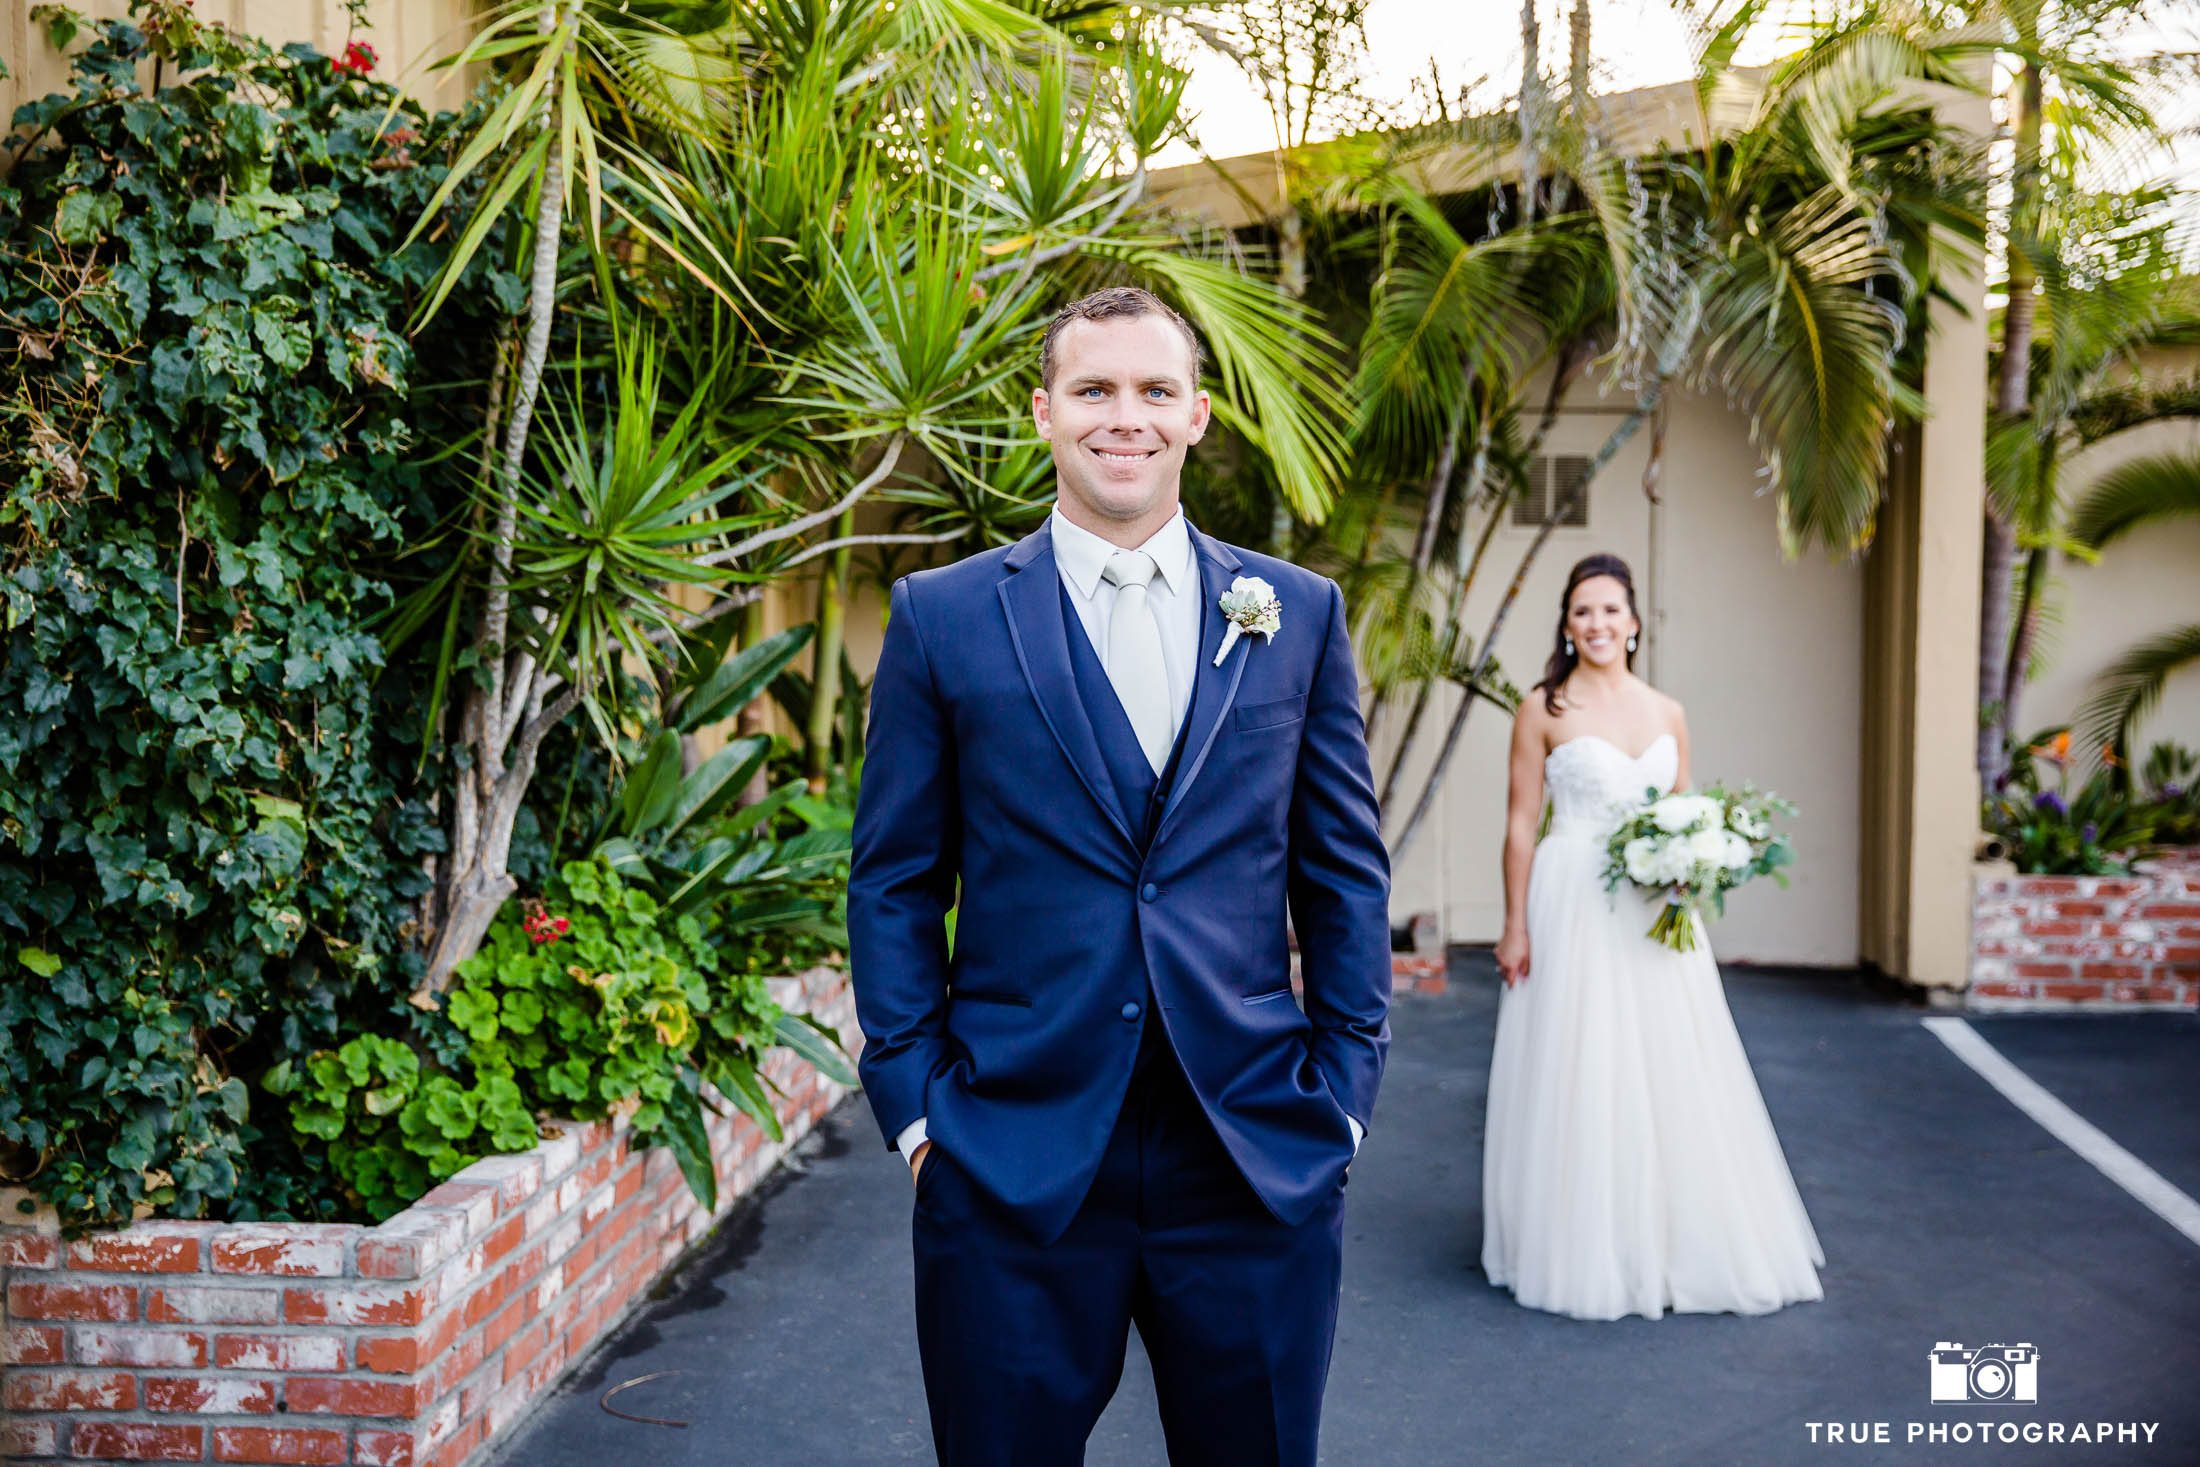 Groom Reacts to Bride's First Look